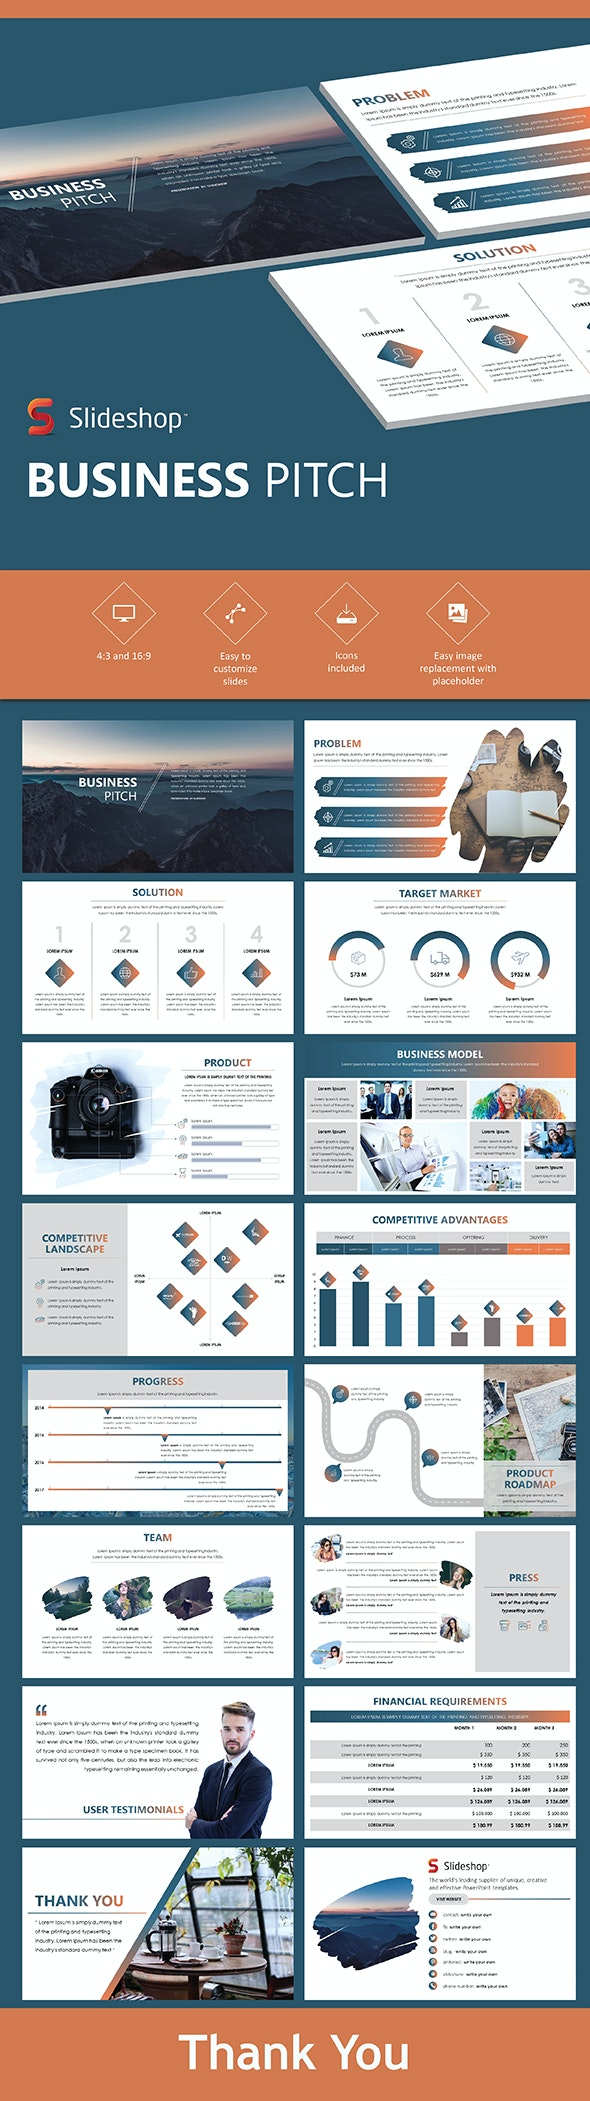 Business Pitch - PowerPoint Templates Presentation Templates